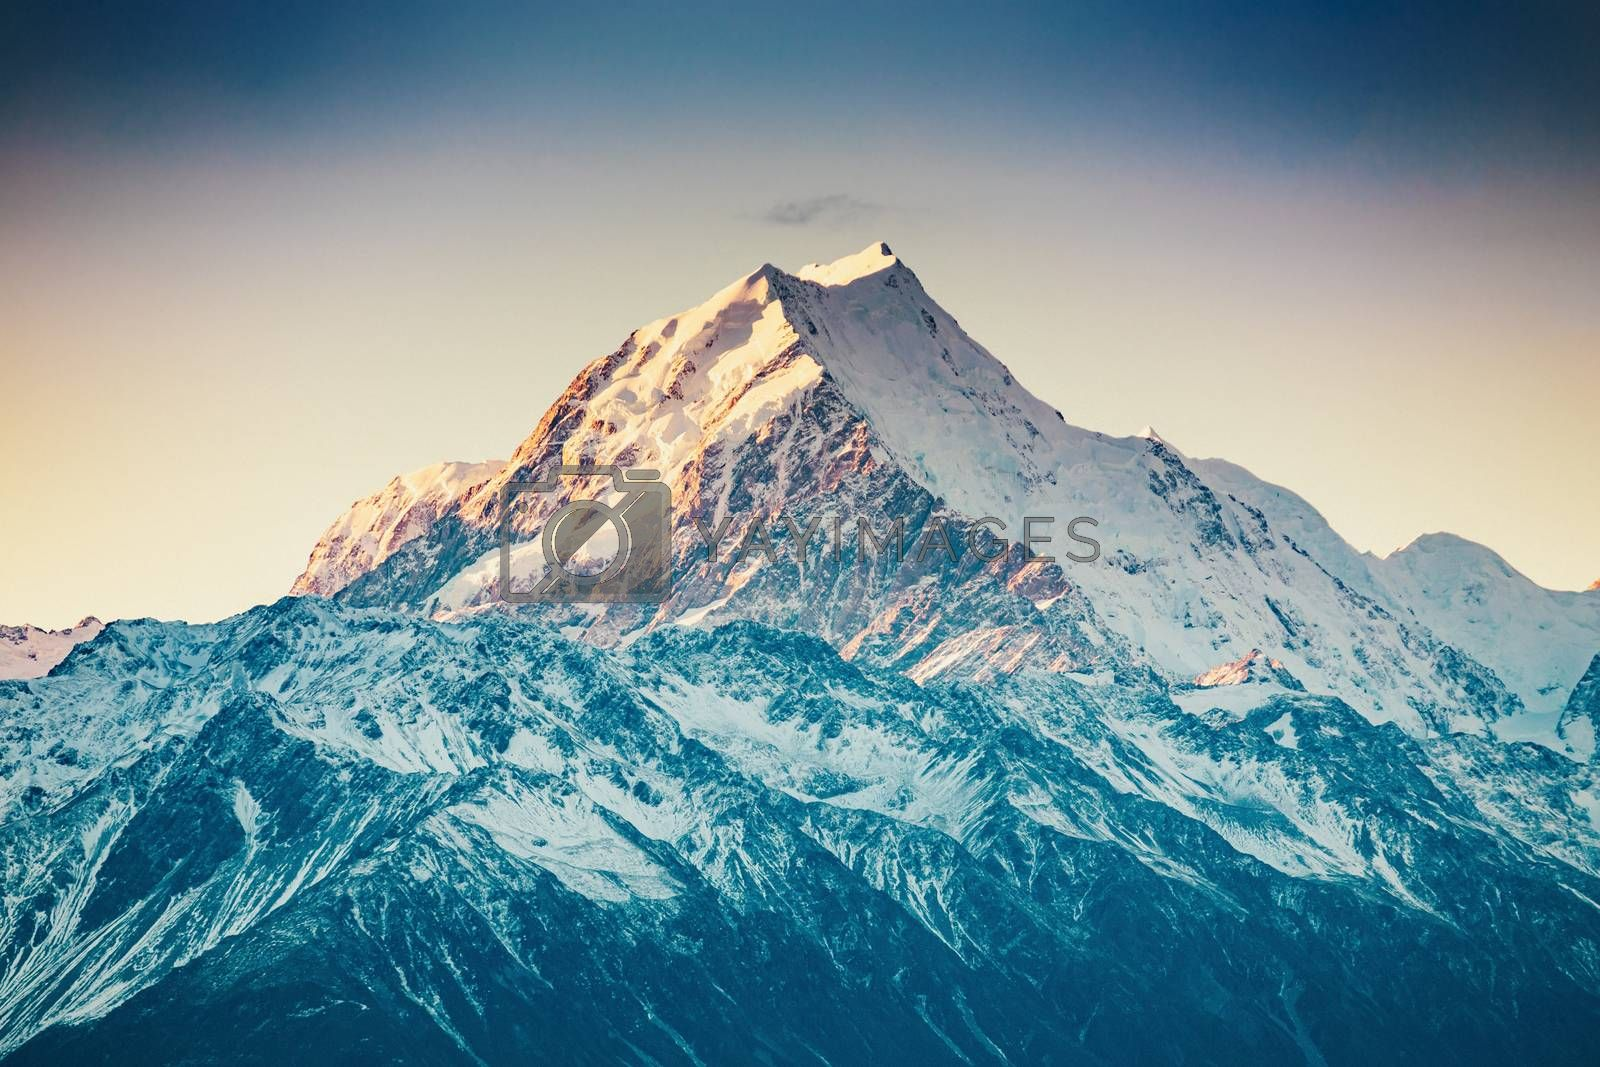 Snowcapped Mt. Cook Peak during Sunset in Mt. Cook National Park, magnificent rugged mountain with snow and ice, South Island, New Zealand